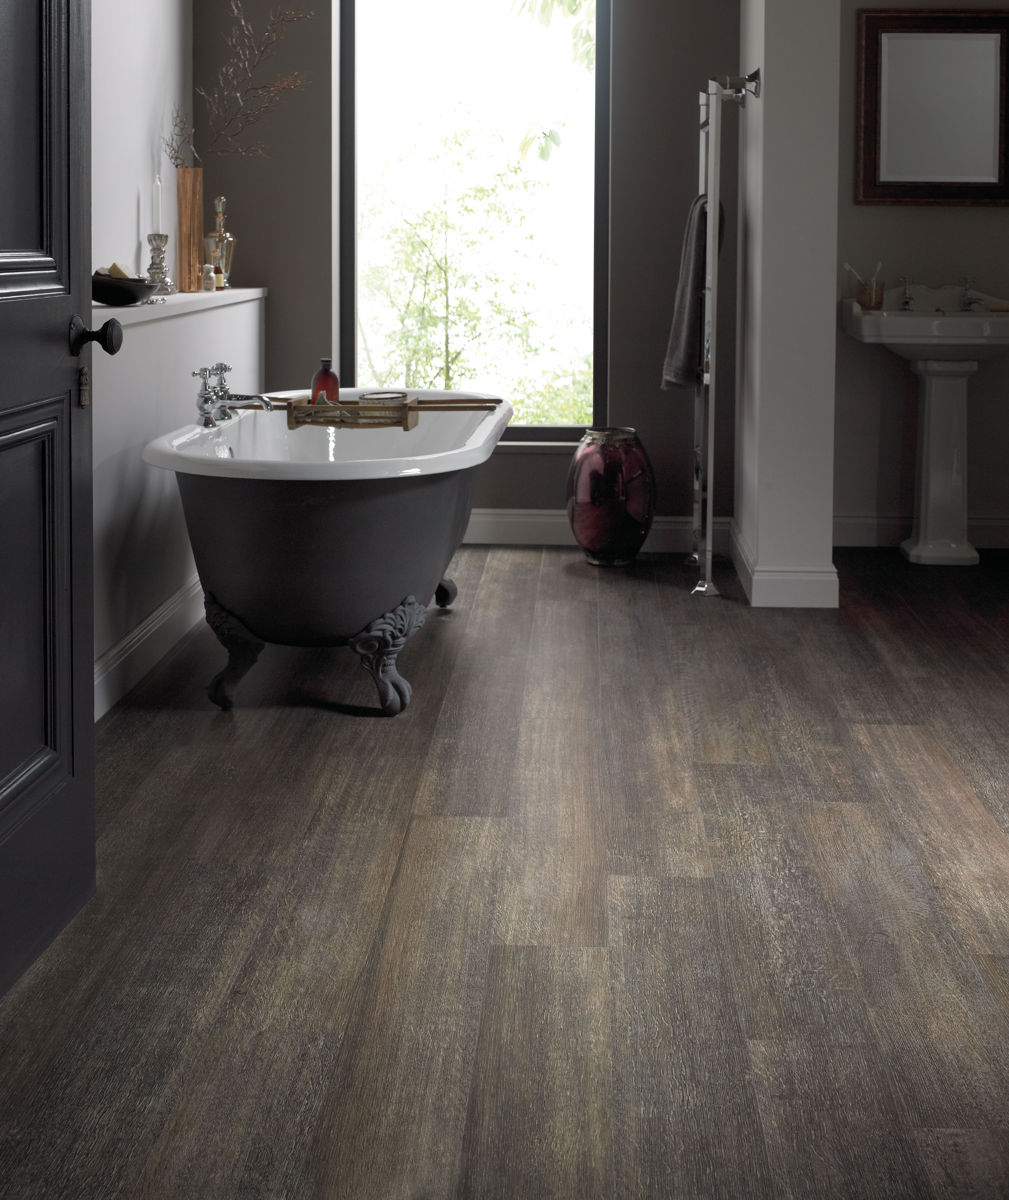 Installing Hardwood Flooring In Bathroom: Karndean Van Gogh Brushed Oak VGW88T Vinyl Flooring